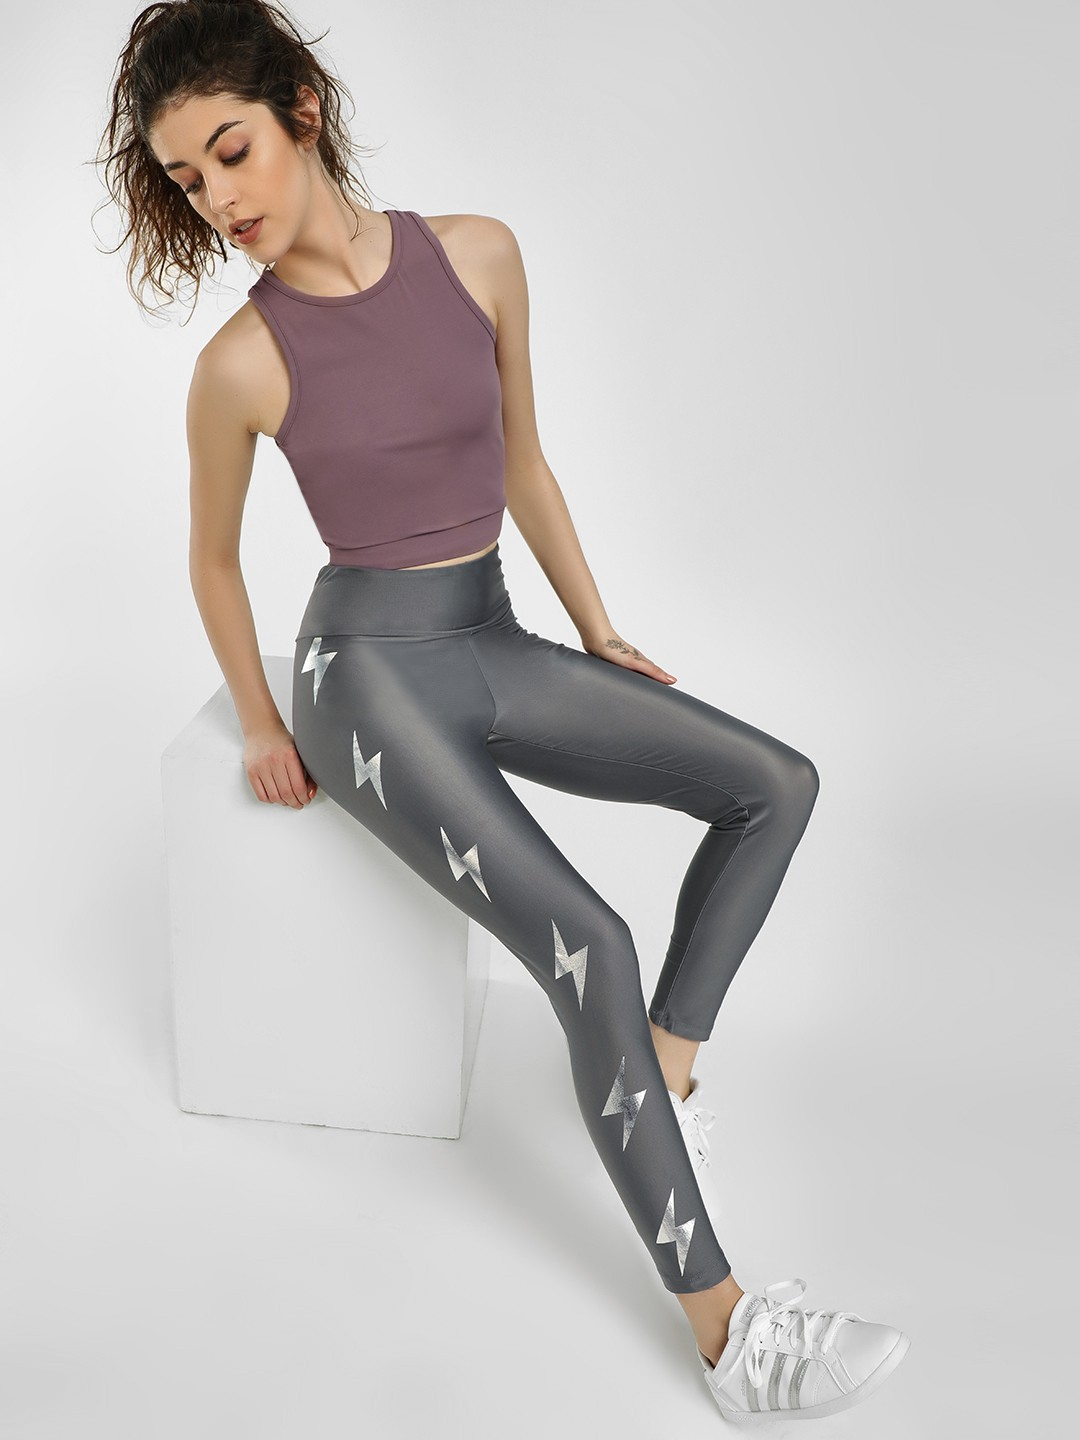 K ACTIVE Grey KOOVS Reflective Thunderbolt Print Leggings 1